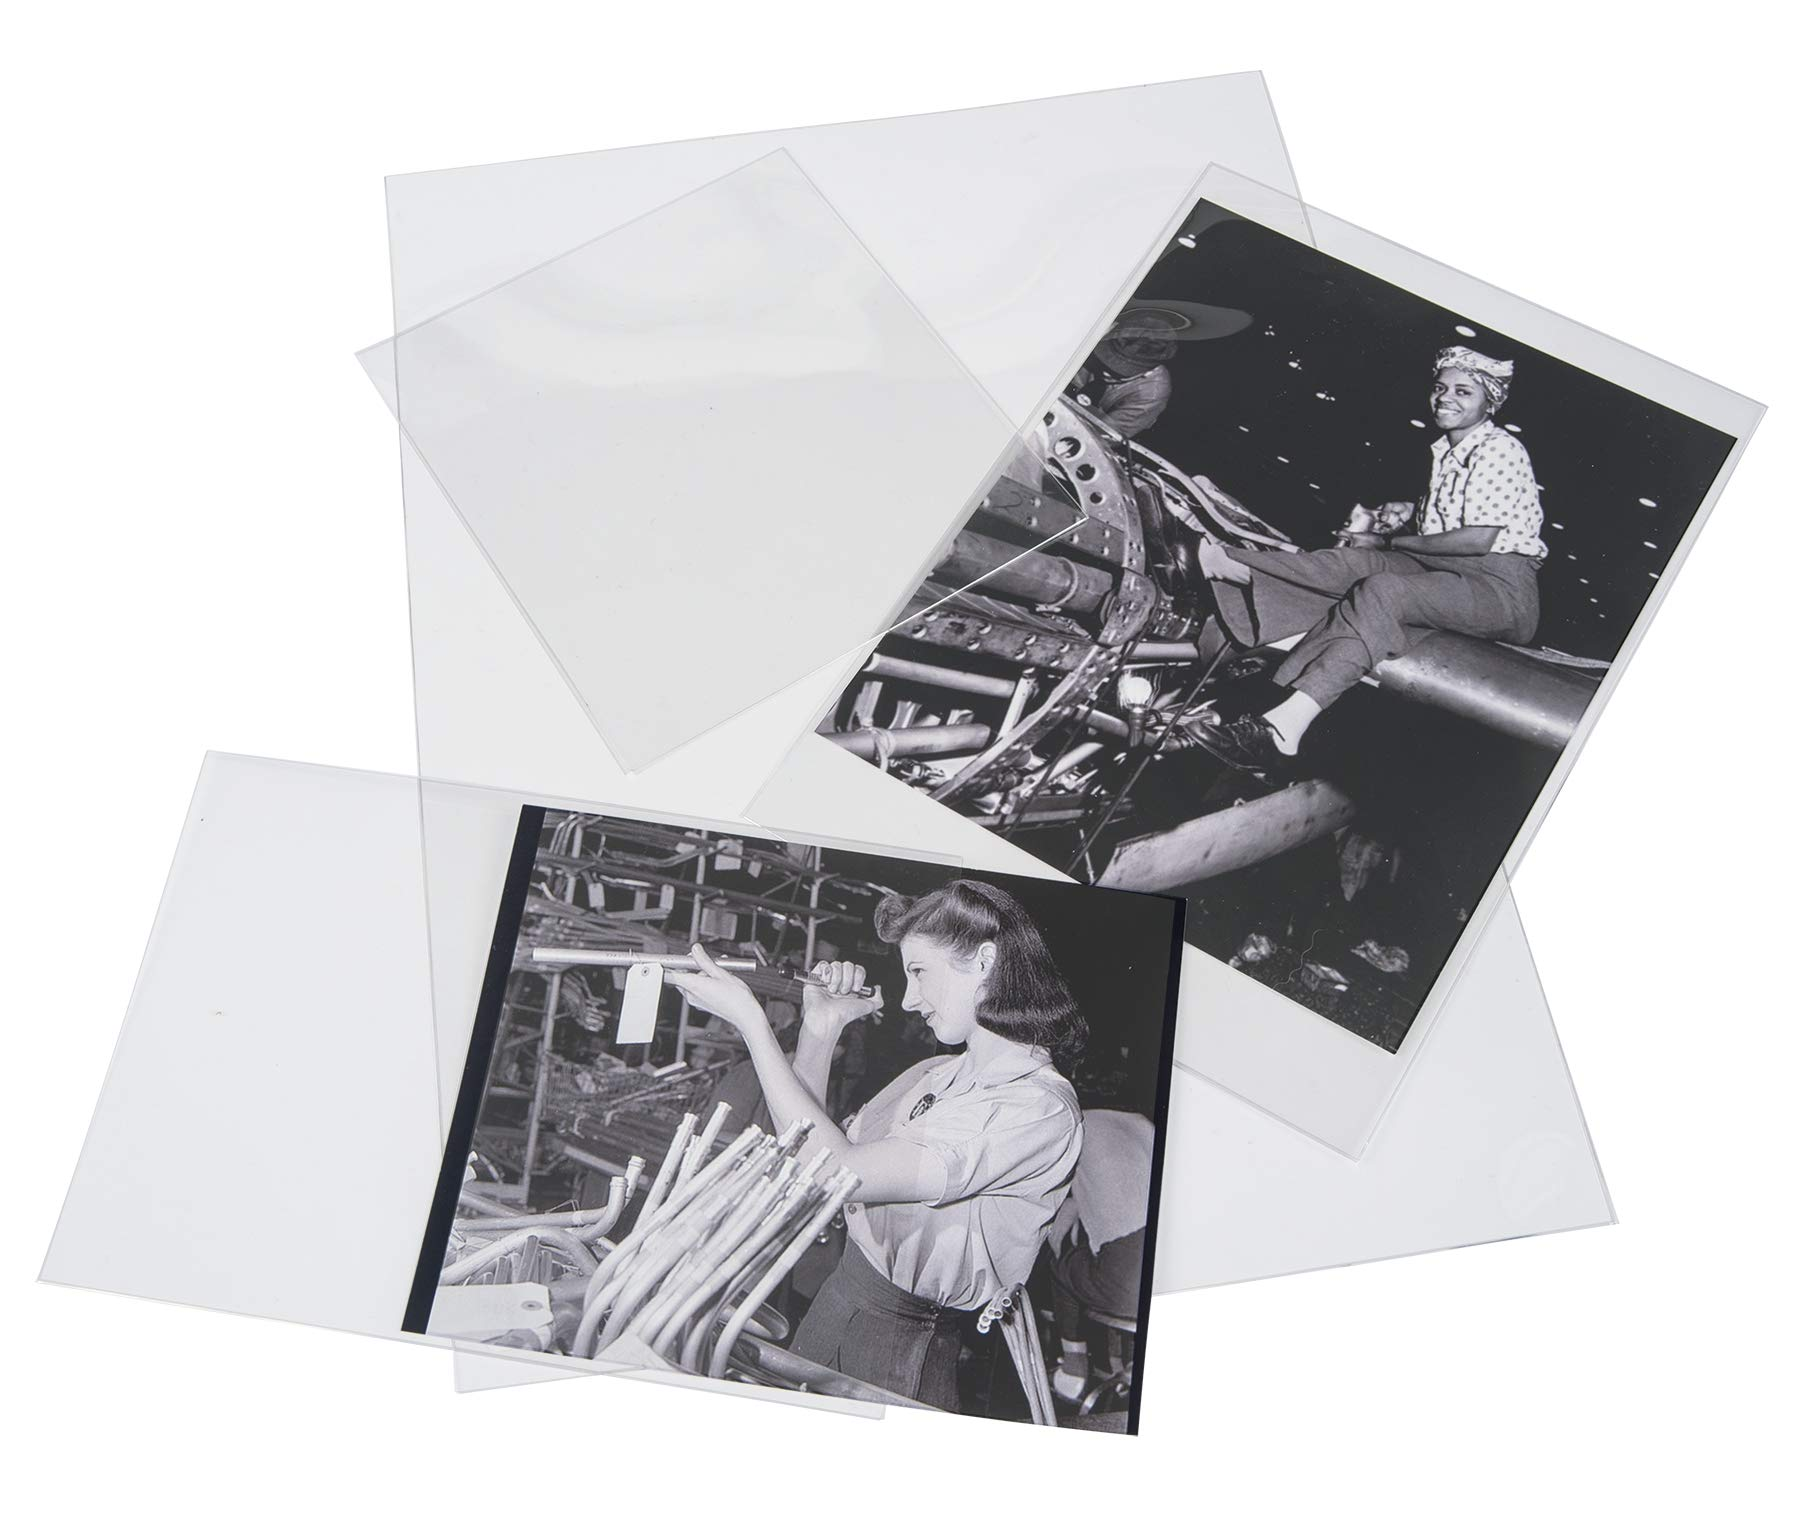 Gaylord Archival Archival Polyester Preservation Sleeves Variety Pack by Gaylord Archival